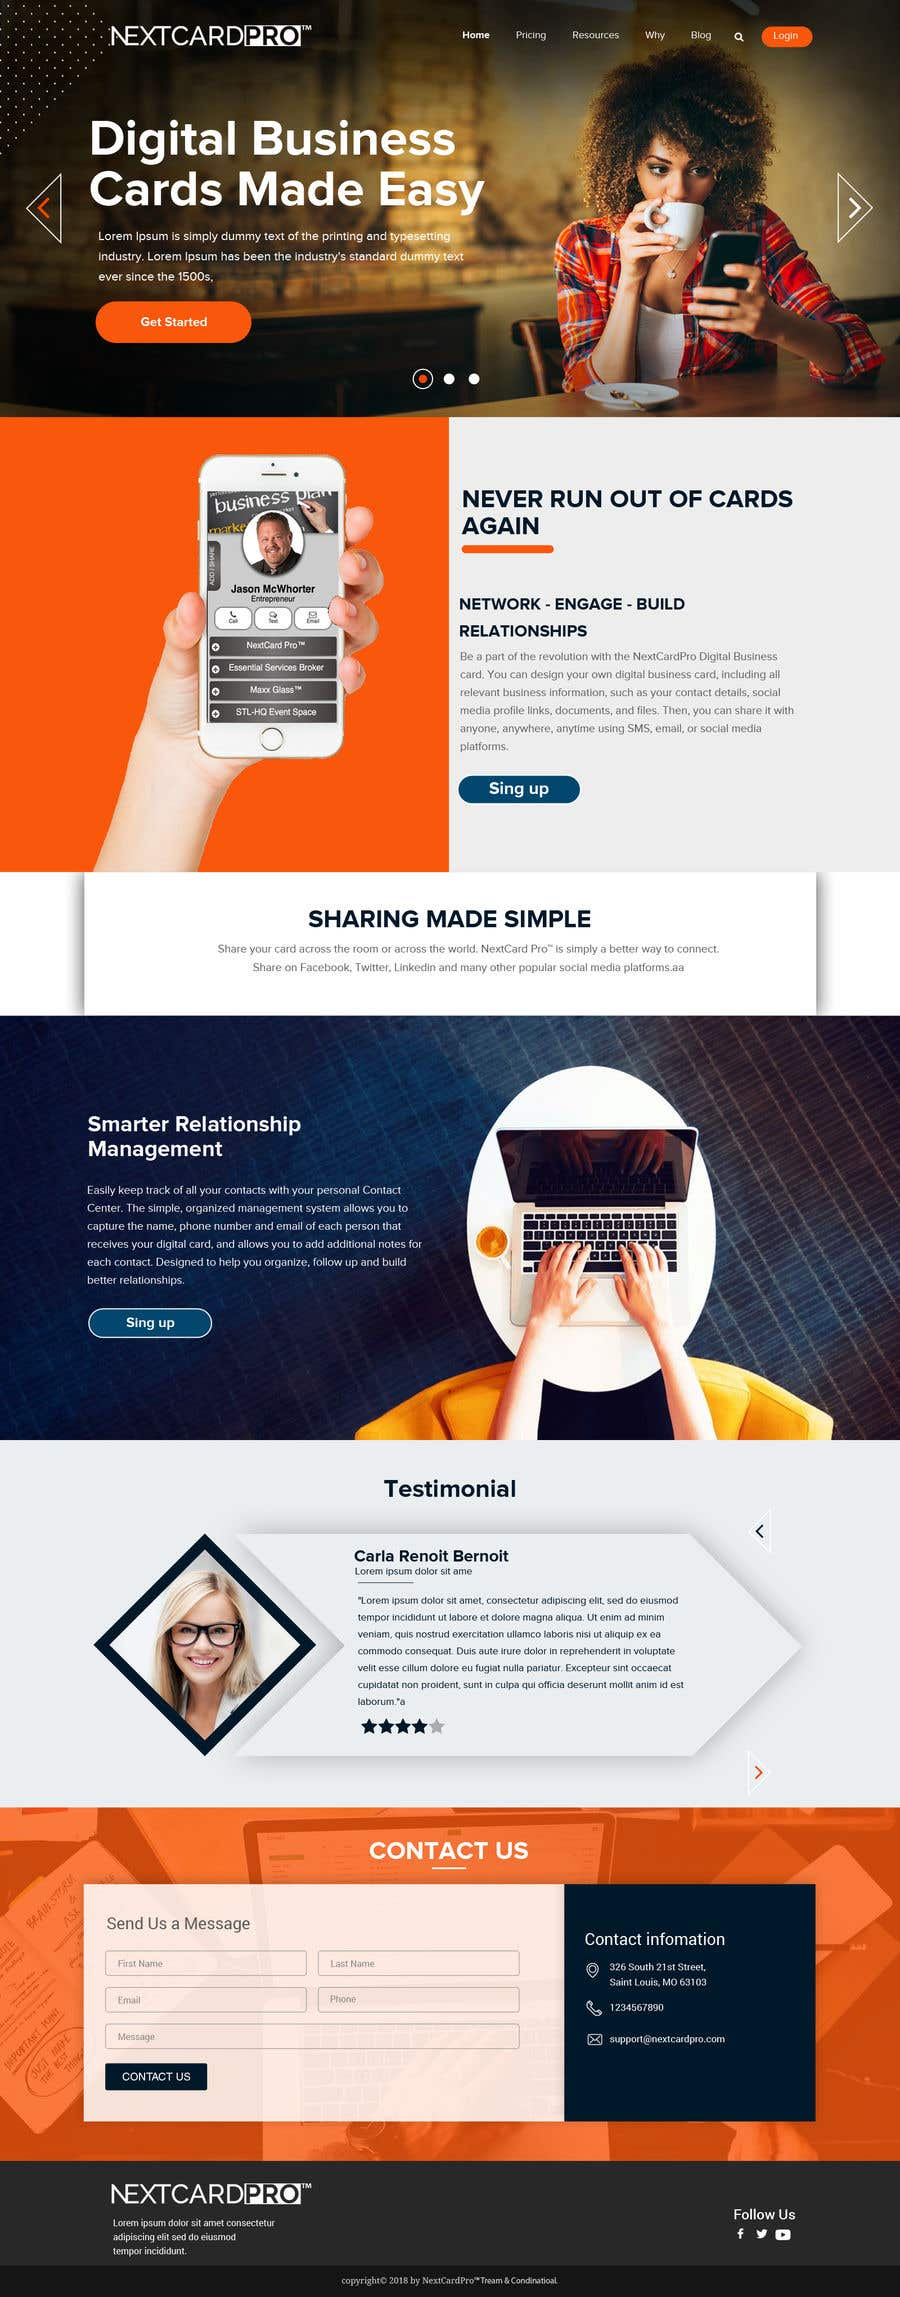 Design a mockup website   i need Wireframes & html from